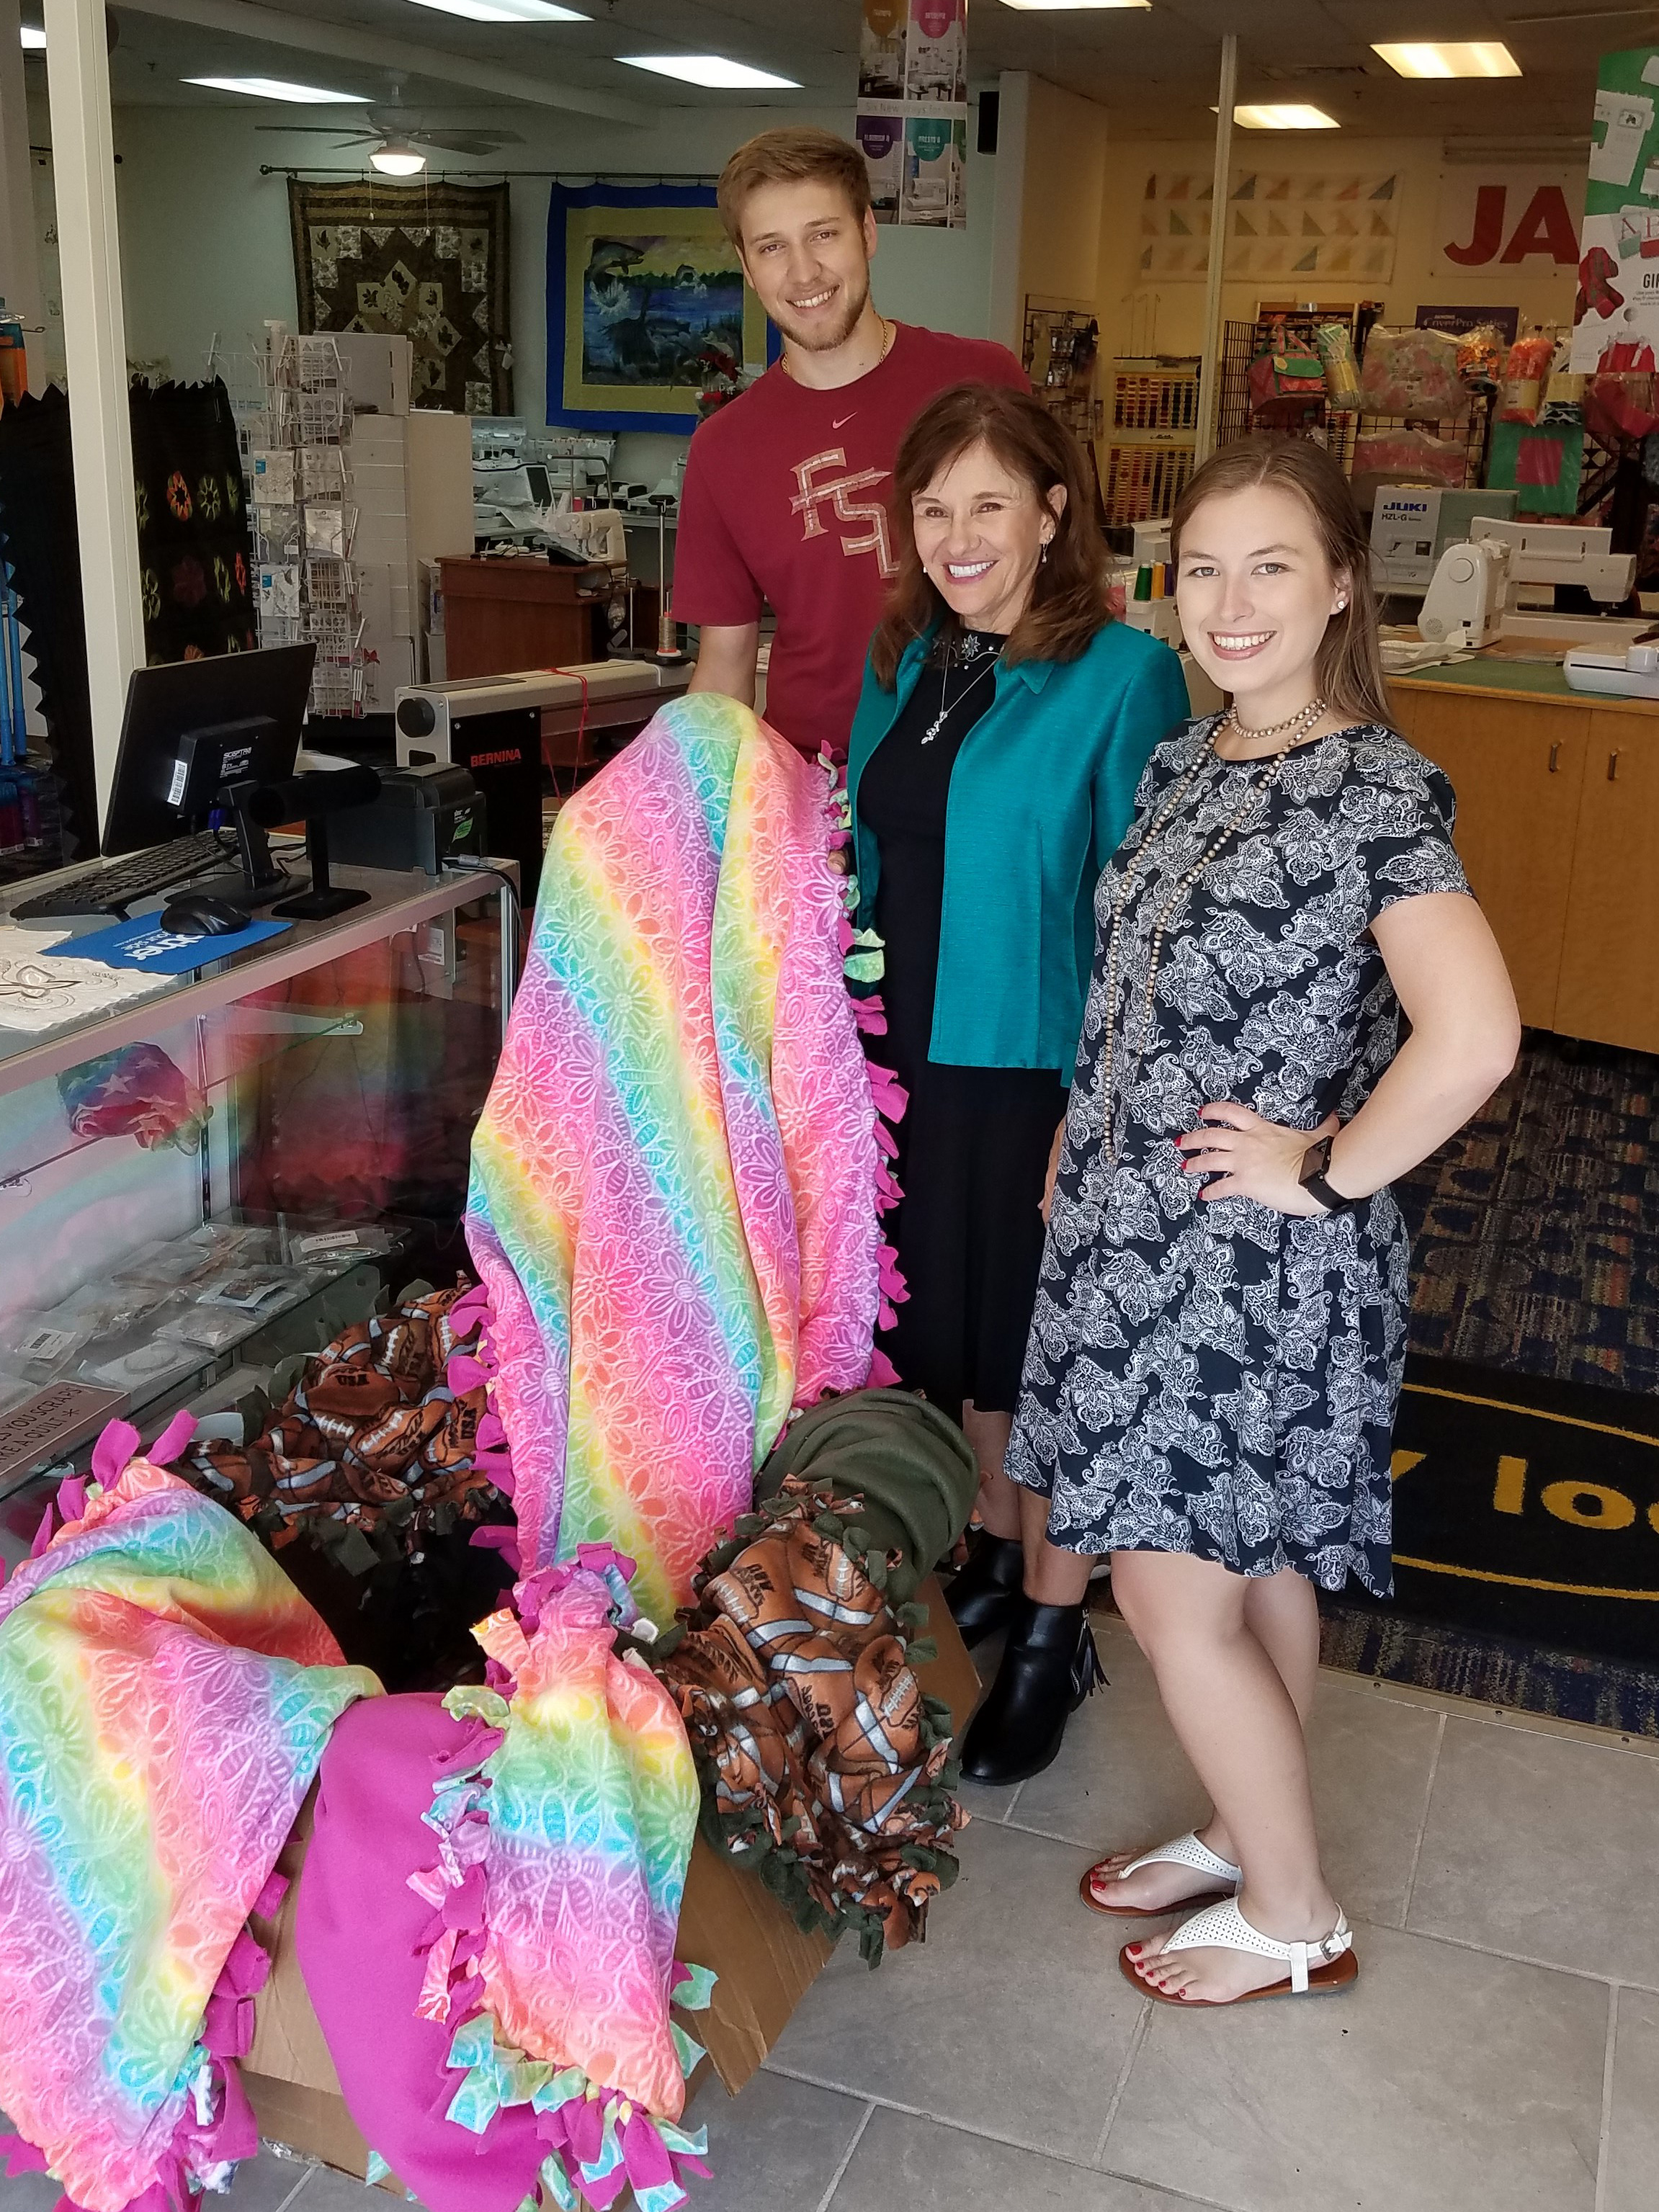 Communication Club blanket donation